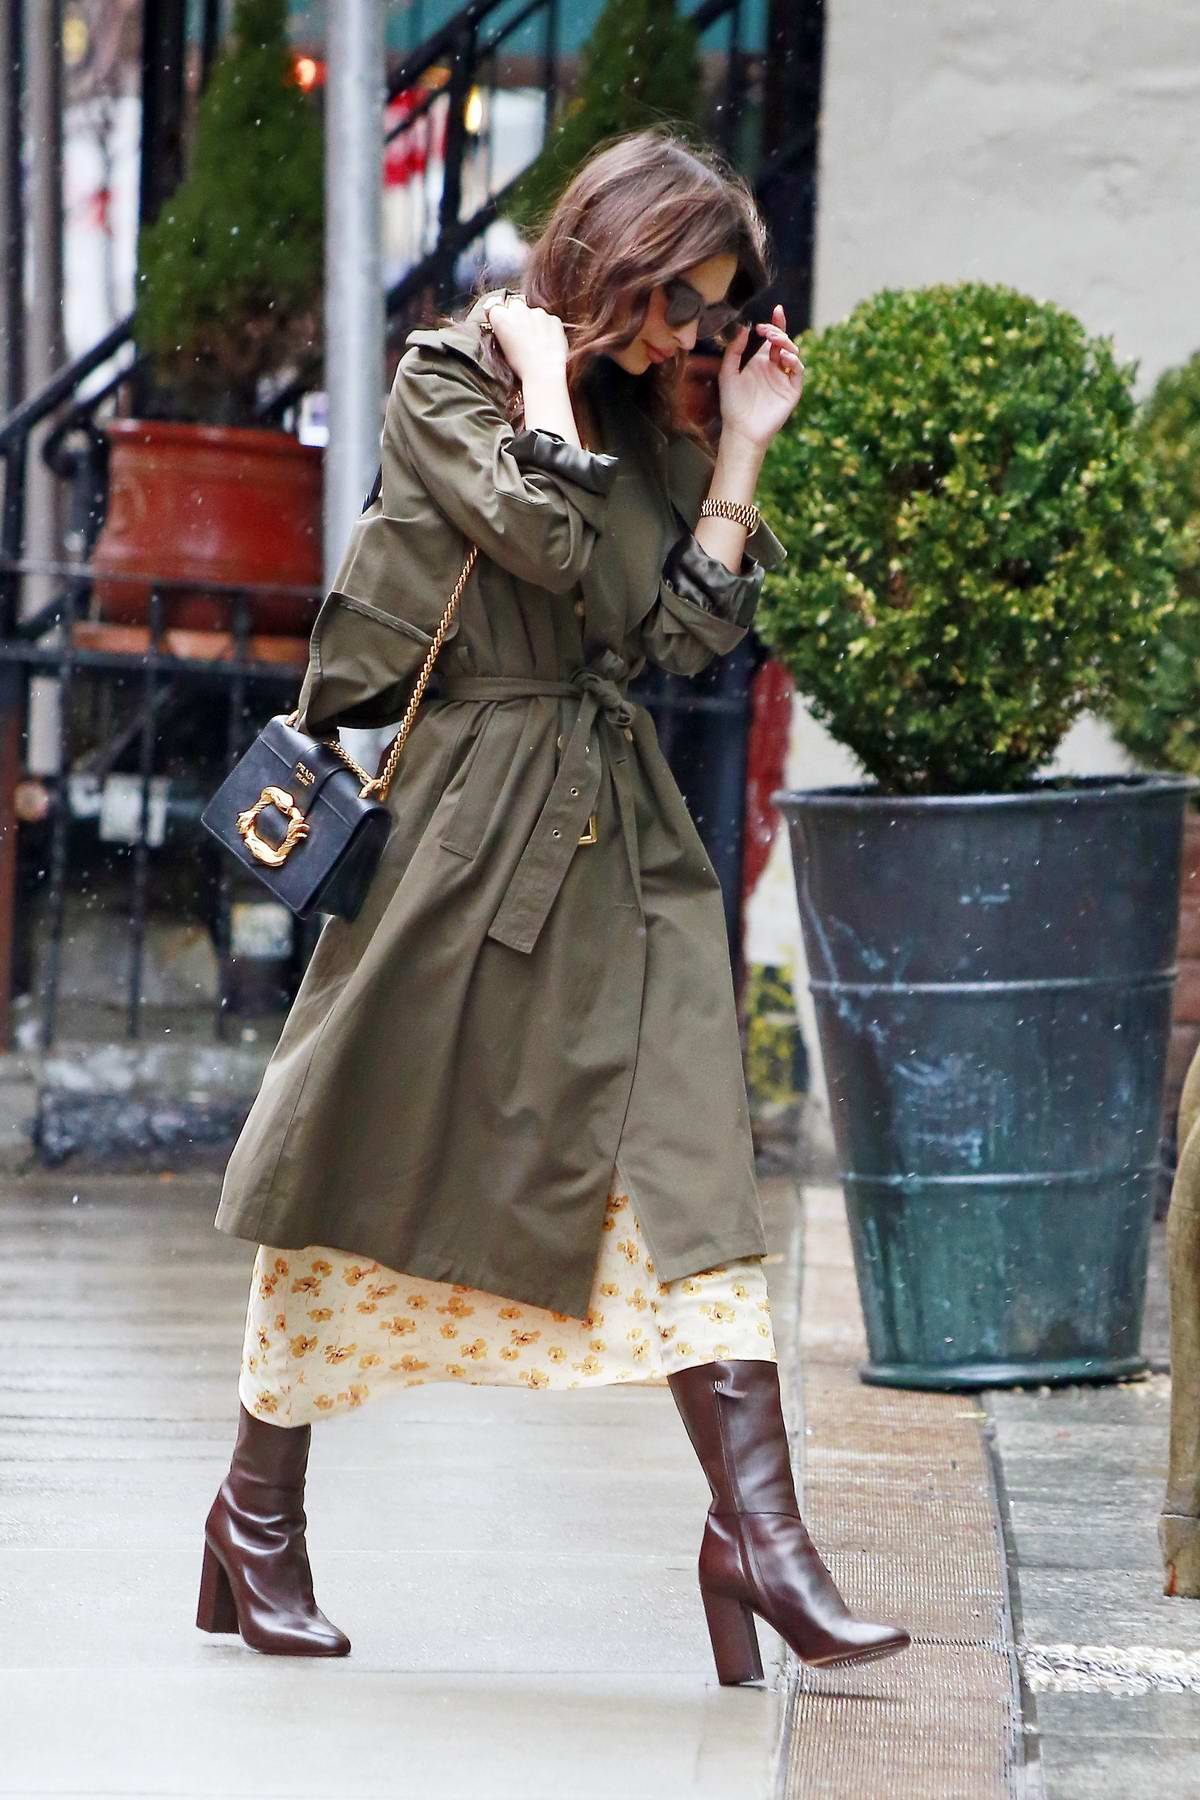 Emily Ratajkowski steps out in rain wearing a green trench coat in New York City